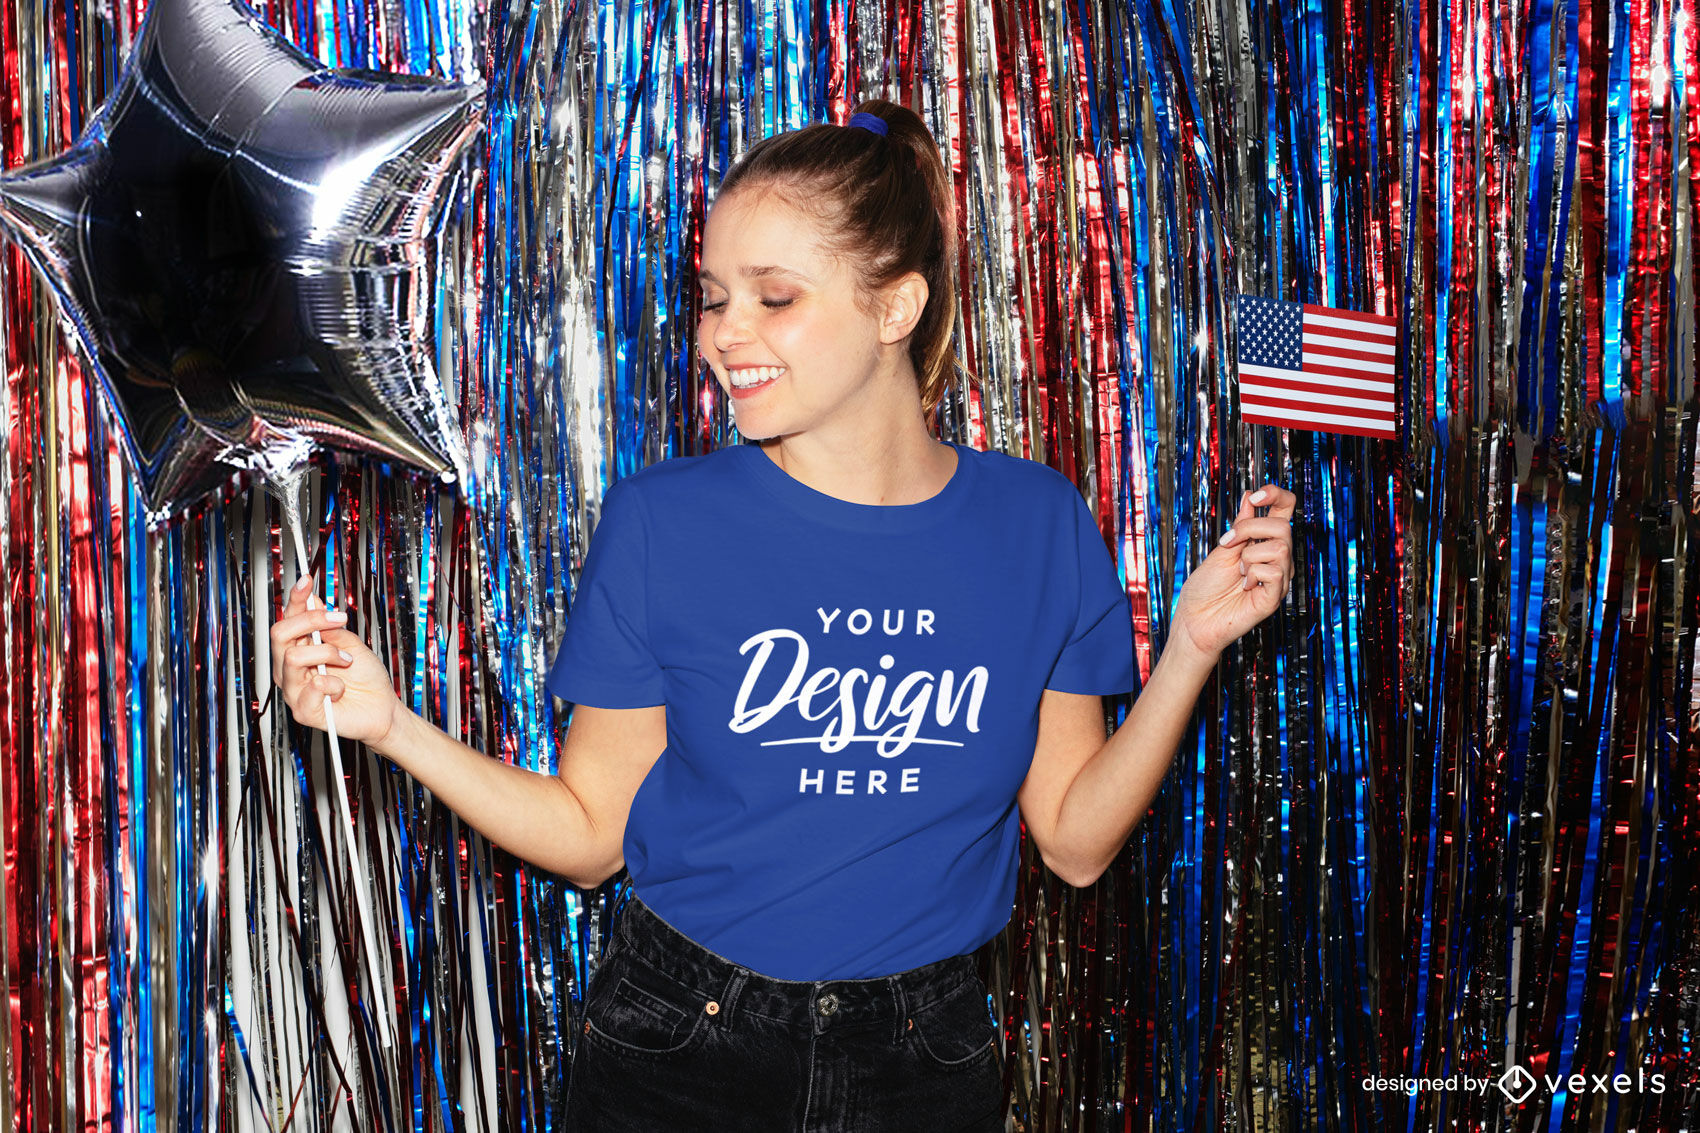 Blue t-shirt girl mockup with american flag party